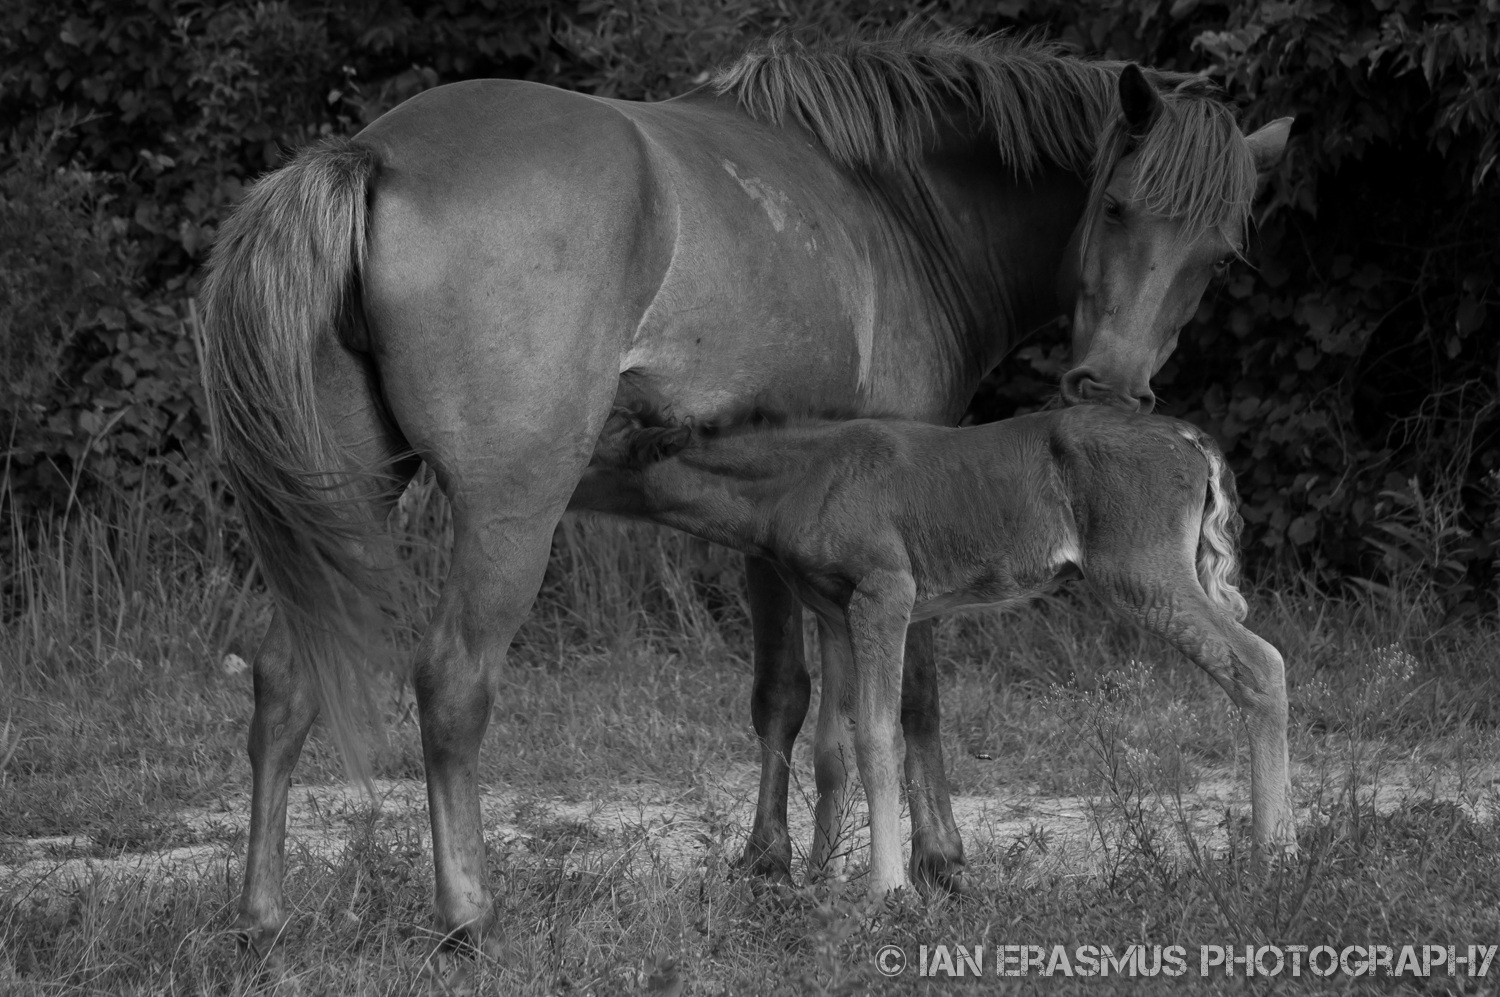 A newborn foal, barely 24 hours old.